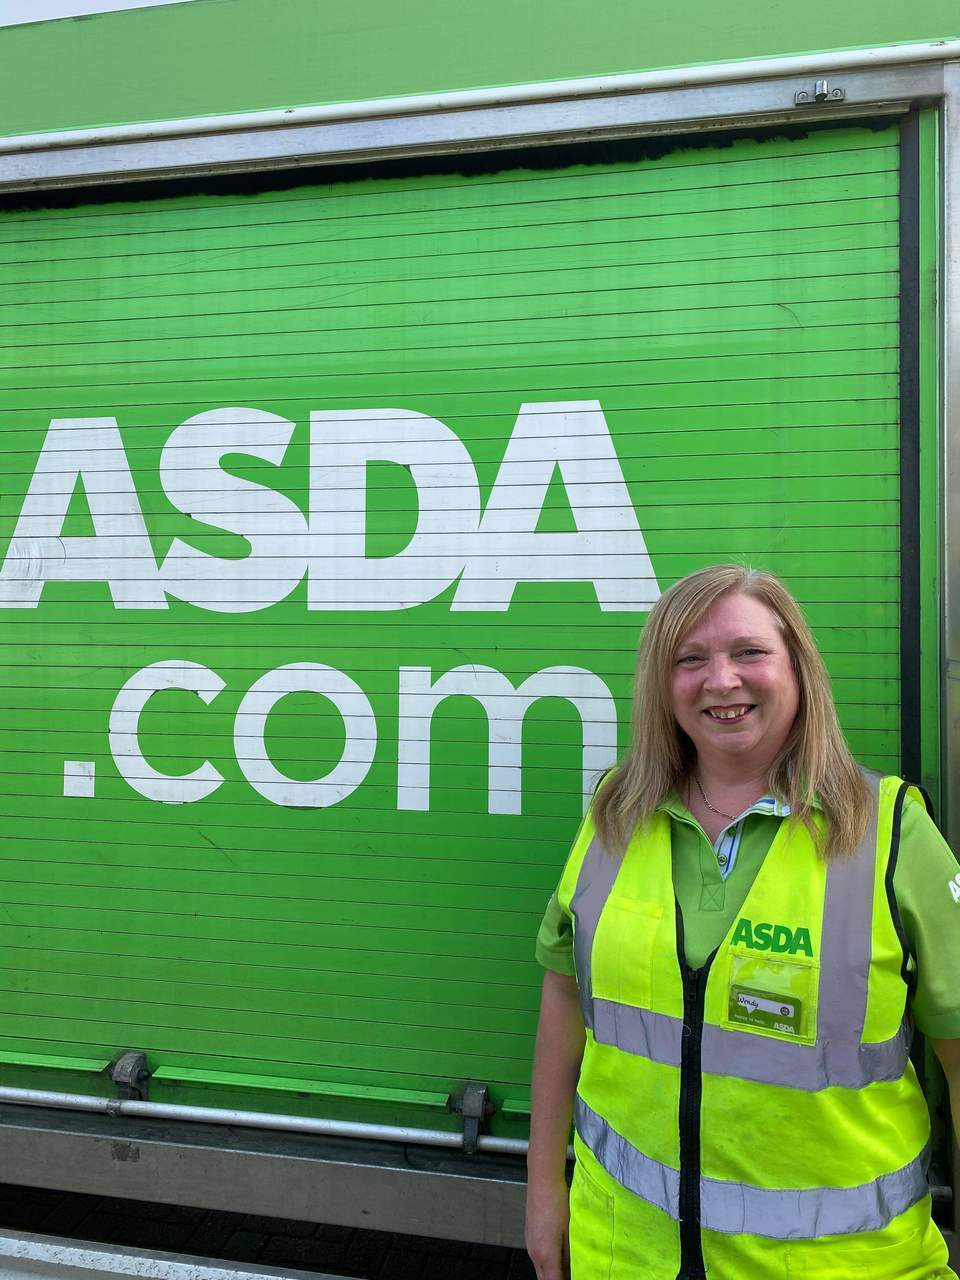 Asda Elgin home shopping driver Wendy marks 25 years with Asda | Asda Elgin